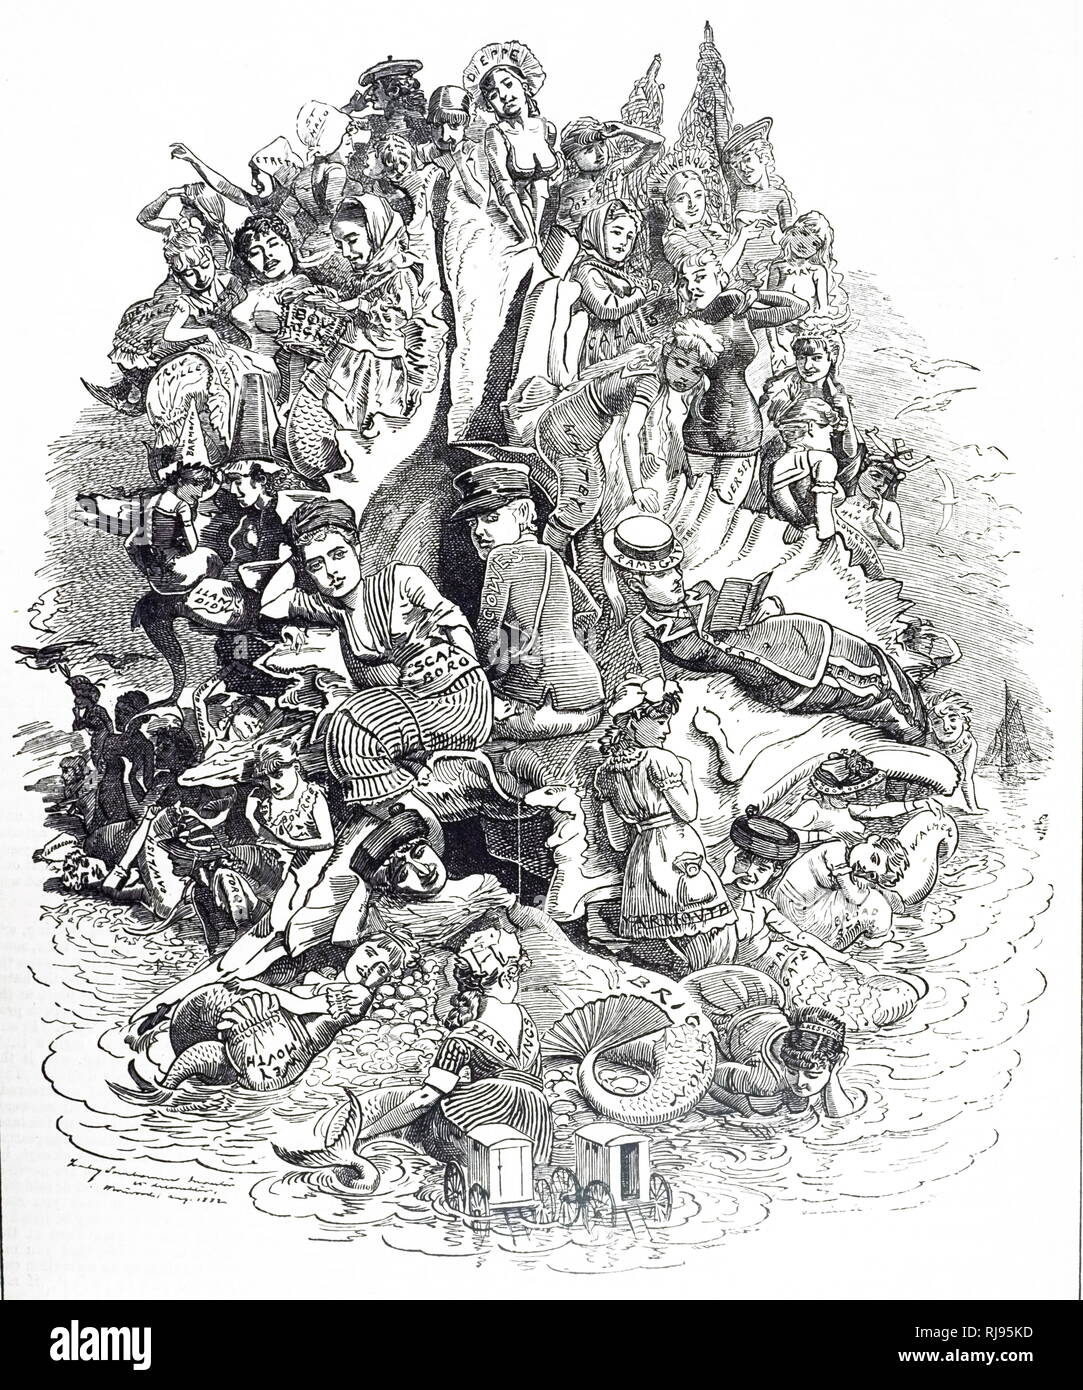 A cartoon commenting on British seaside resorts, each given prominence it earned by the number of visitors it attracted. Illustrated by Edward Linley Sambourne (1844-1910) an English cartoonist and illustrator. Dated 19th century - Stock Image